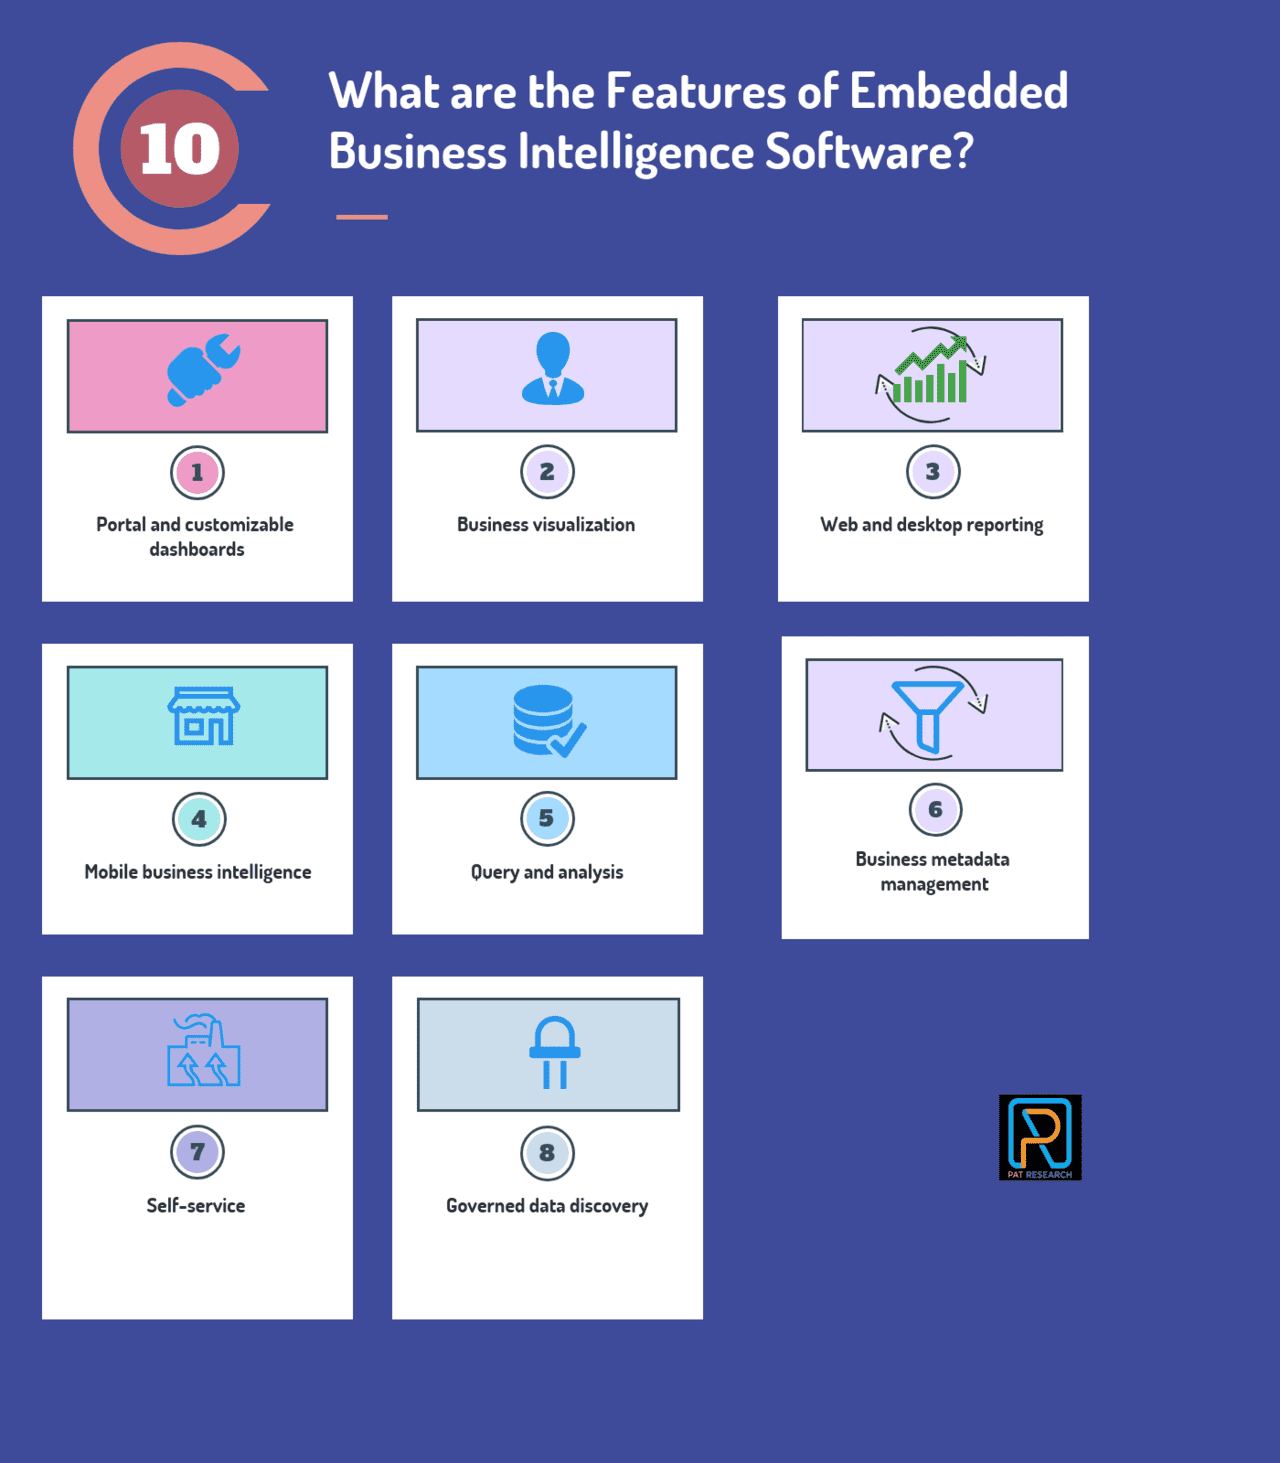 What are the Features of Embedded Business Intelligence Software?